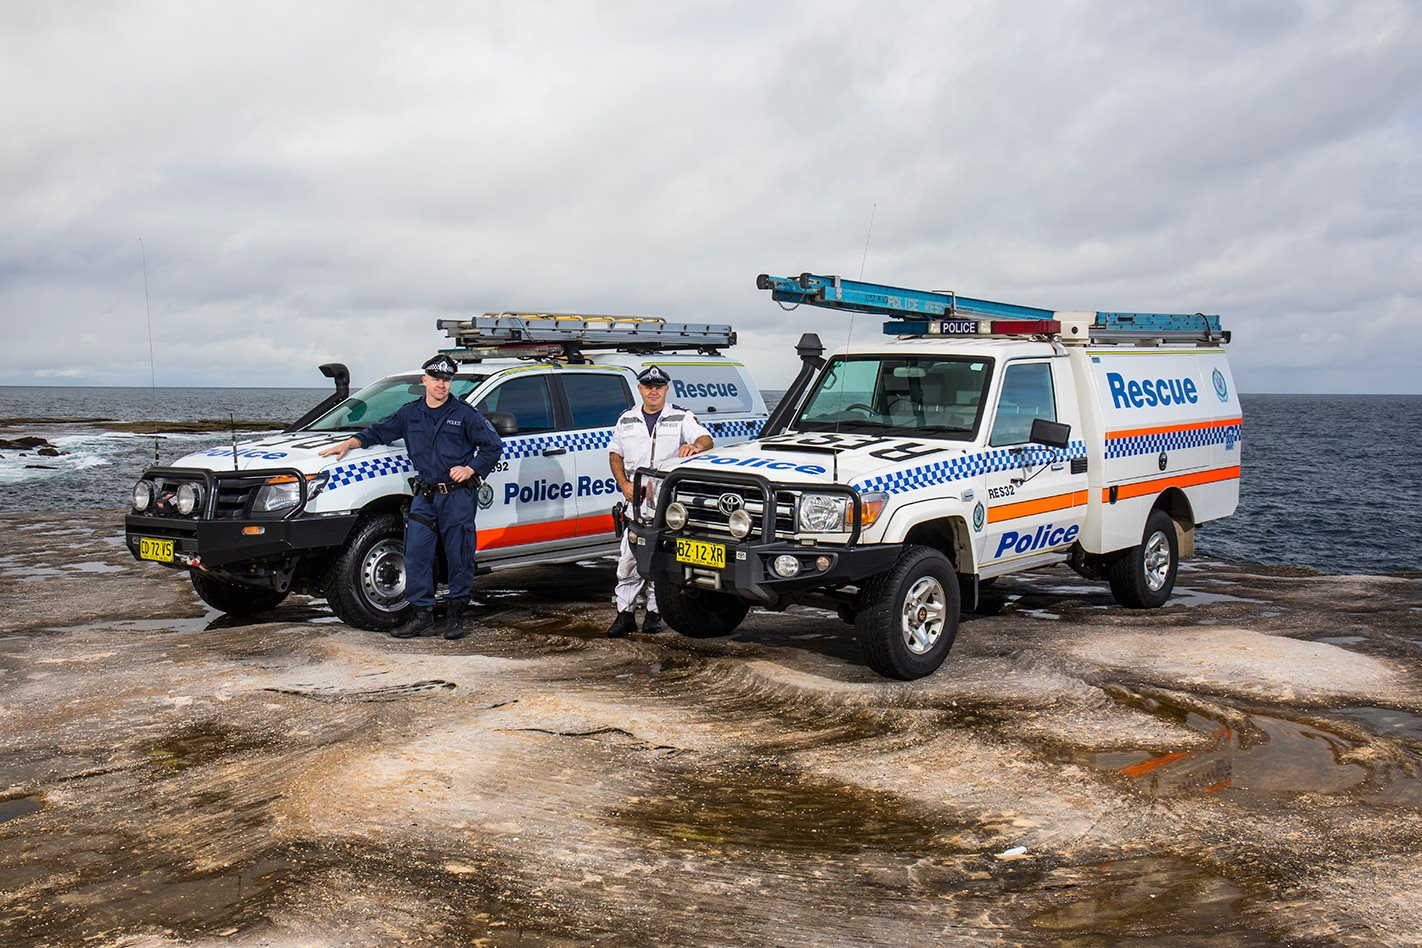 NSW POLICE RESCUE FLEET